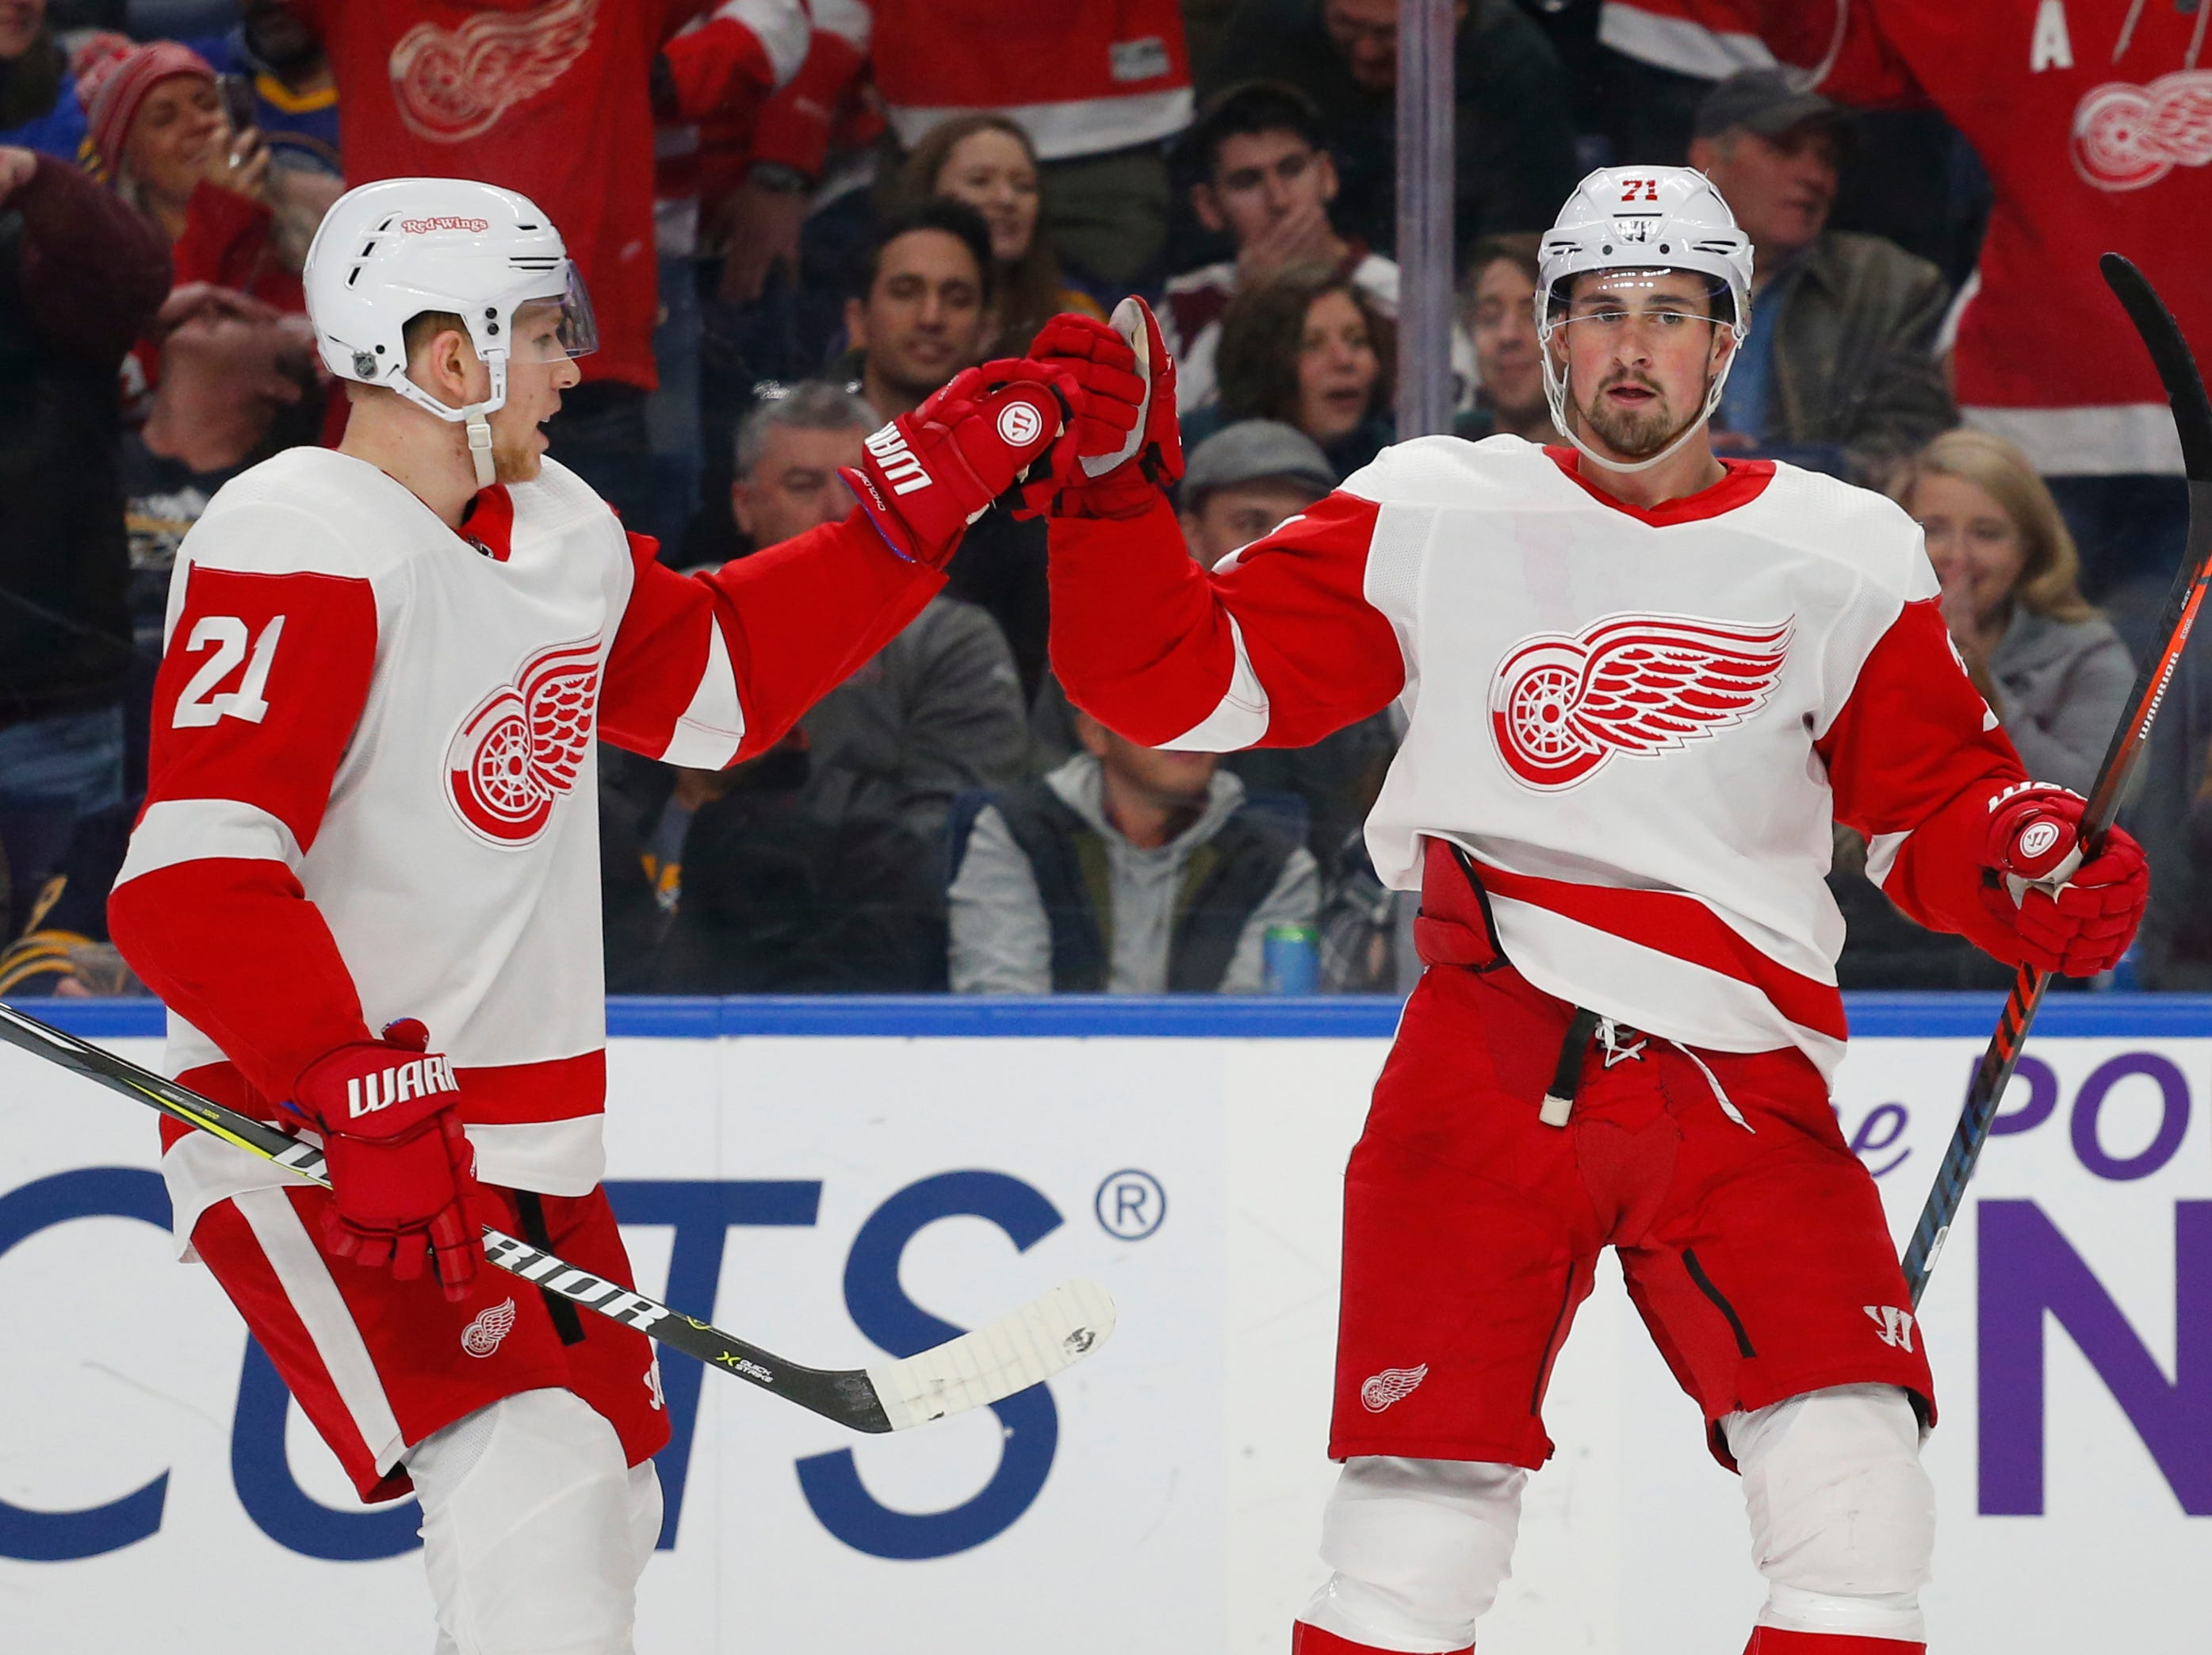 Detroit Red Wings defenseman Dennis Cholowski (21) and forward Dylan Larkin (71) celebrate a goal during the second period of an NHL hockey game against the Buffalo Sabres, Saturday, Feb. 9, 2019, in Buffalo N.Y. (AP Photo/Jeffrey T. Barnes)